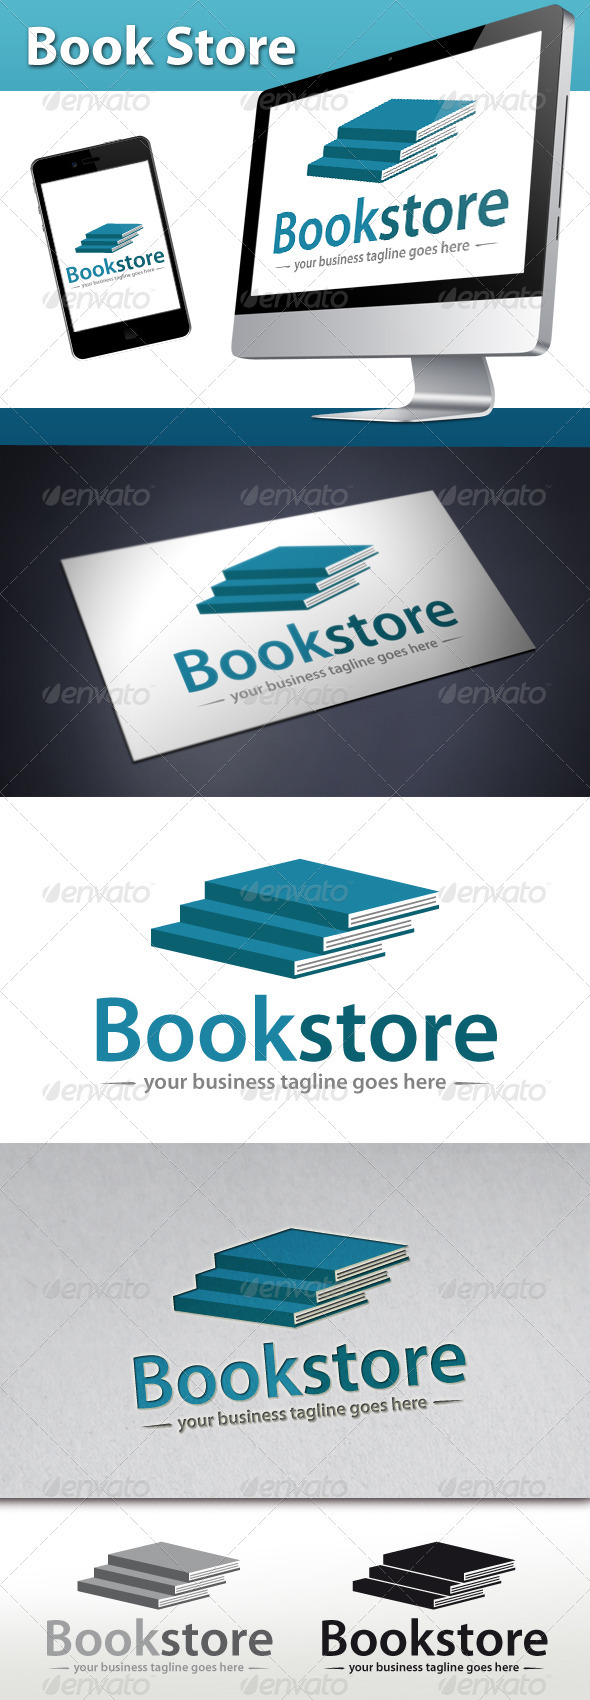 GraphicRiver Book Store Logo 3422438